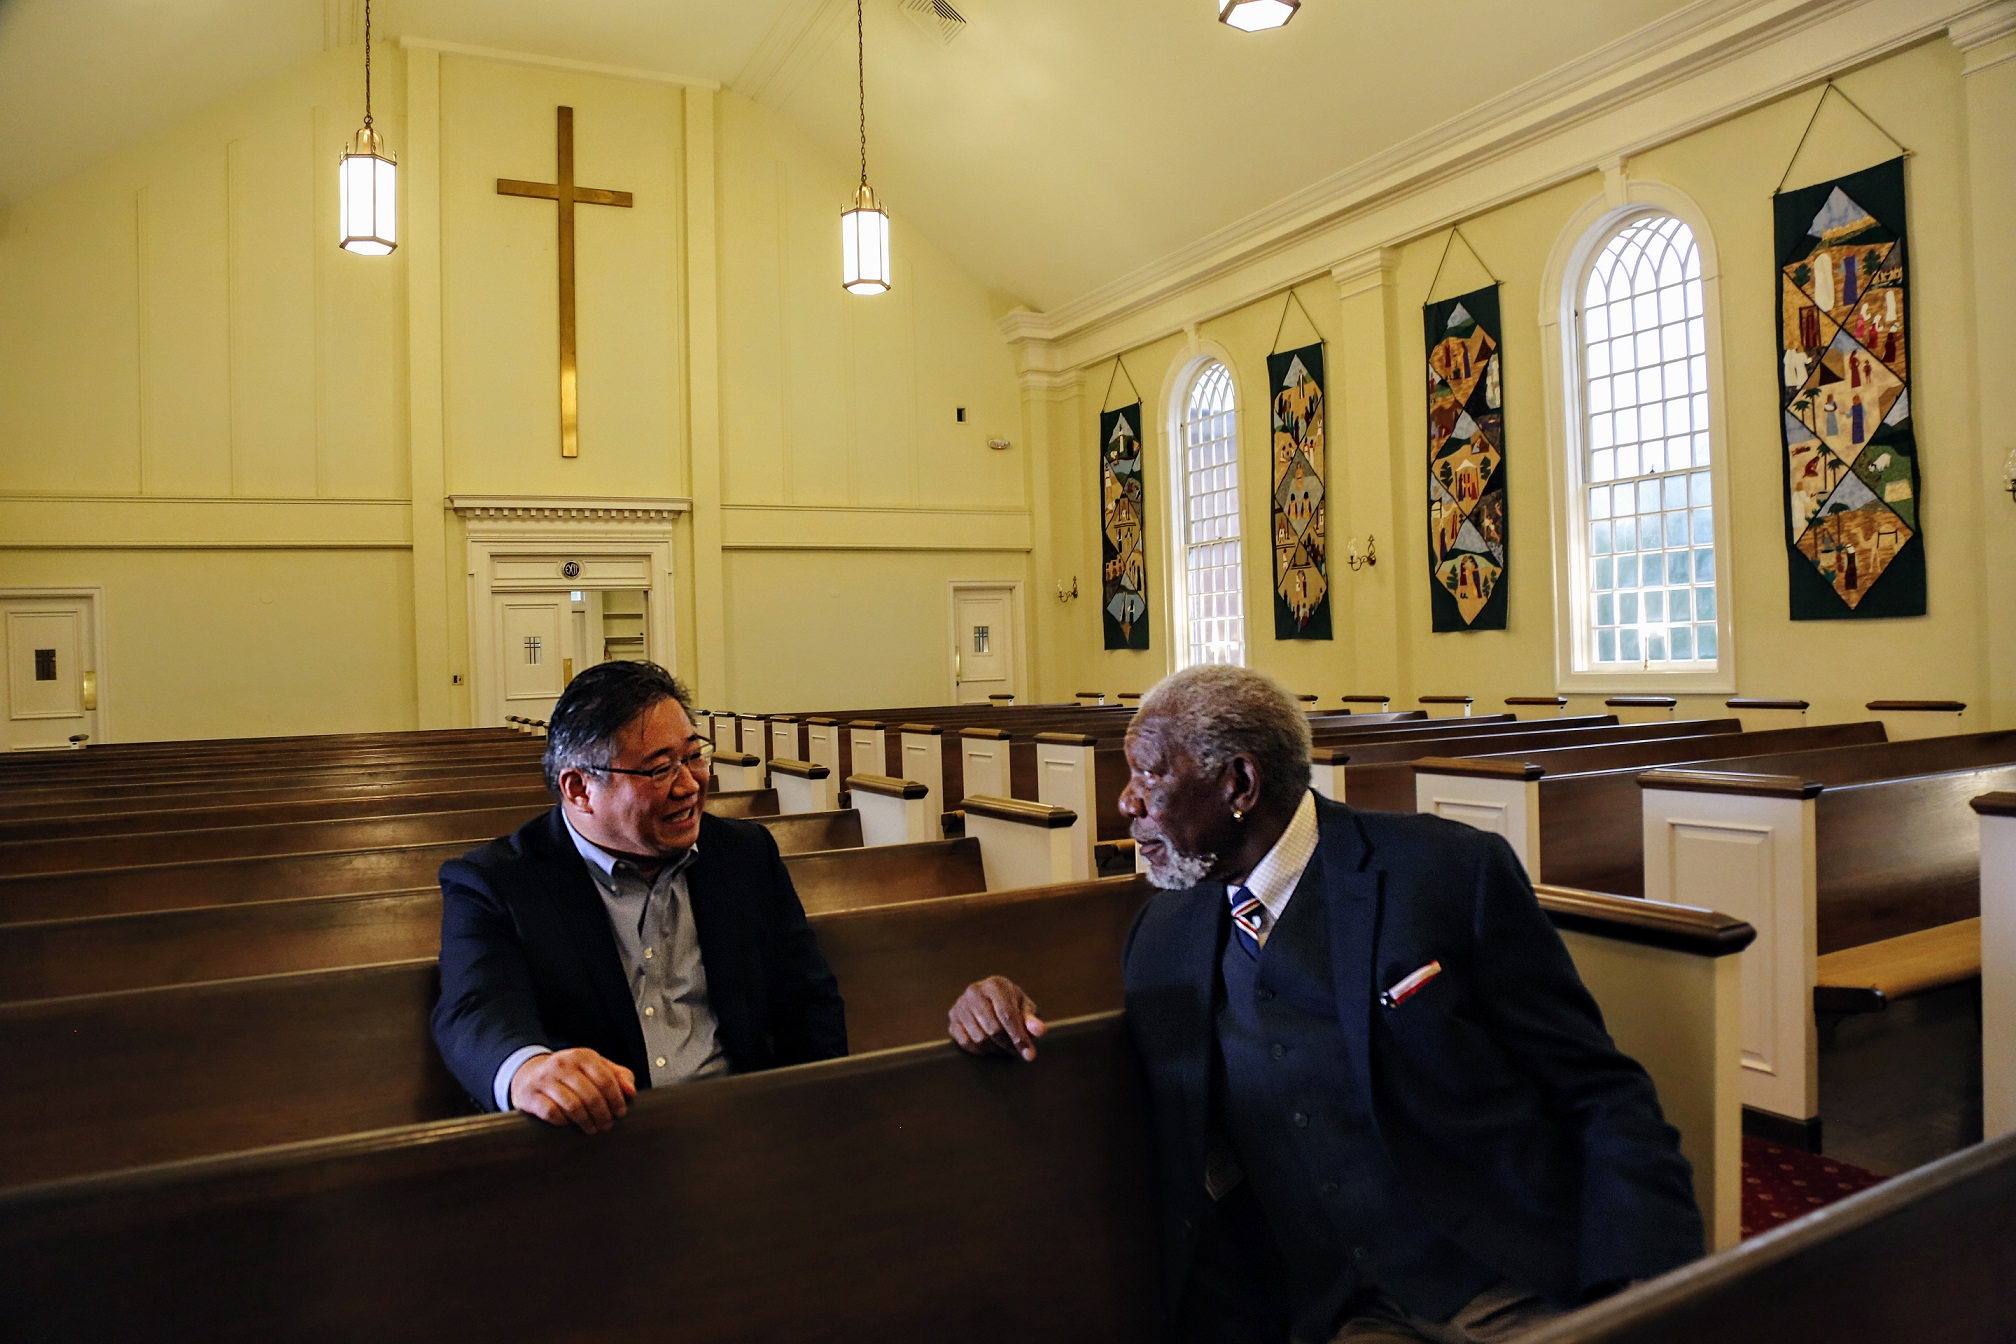 BETHESDA, MD - Former North Korean prisoner and Christian Minister Kenneth Bae shares his experience with Morgan Freeman inside the Concord Saint Andrews United Methodist Church. (Photo Credit: National Geographic/David Kraemer)